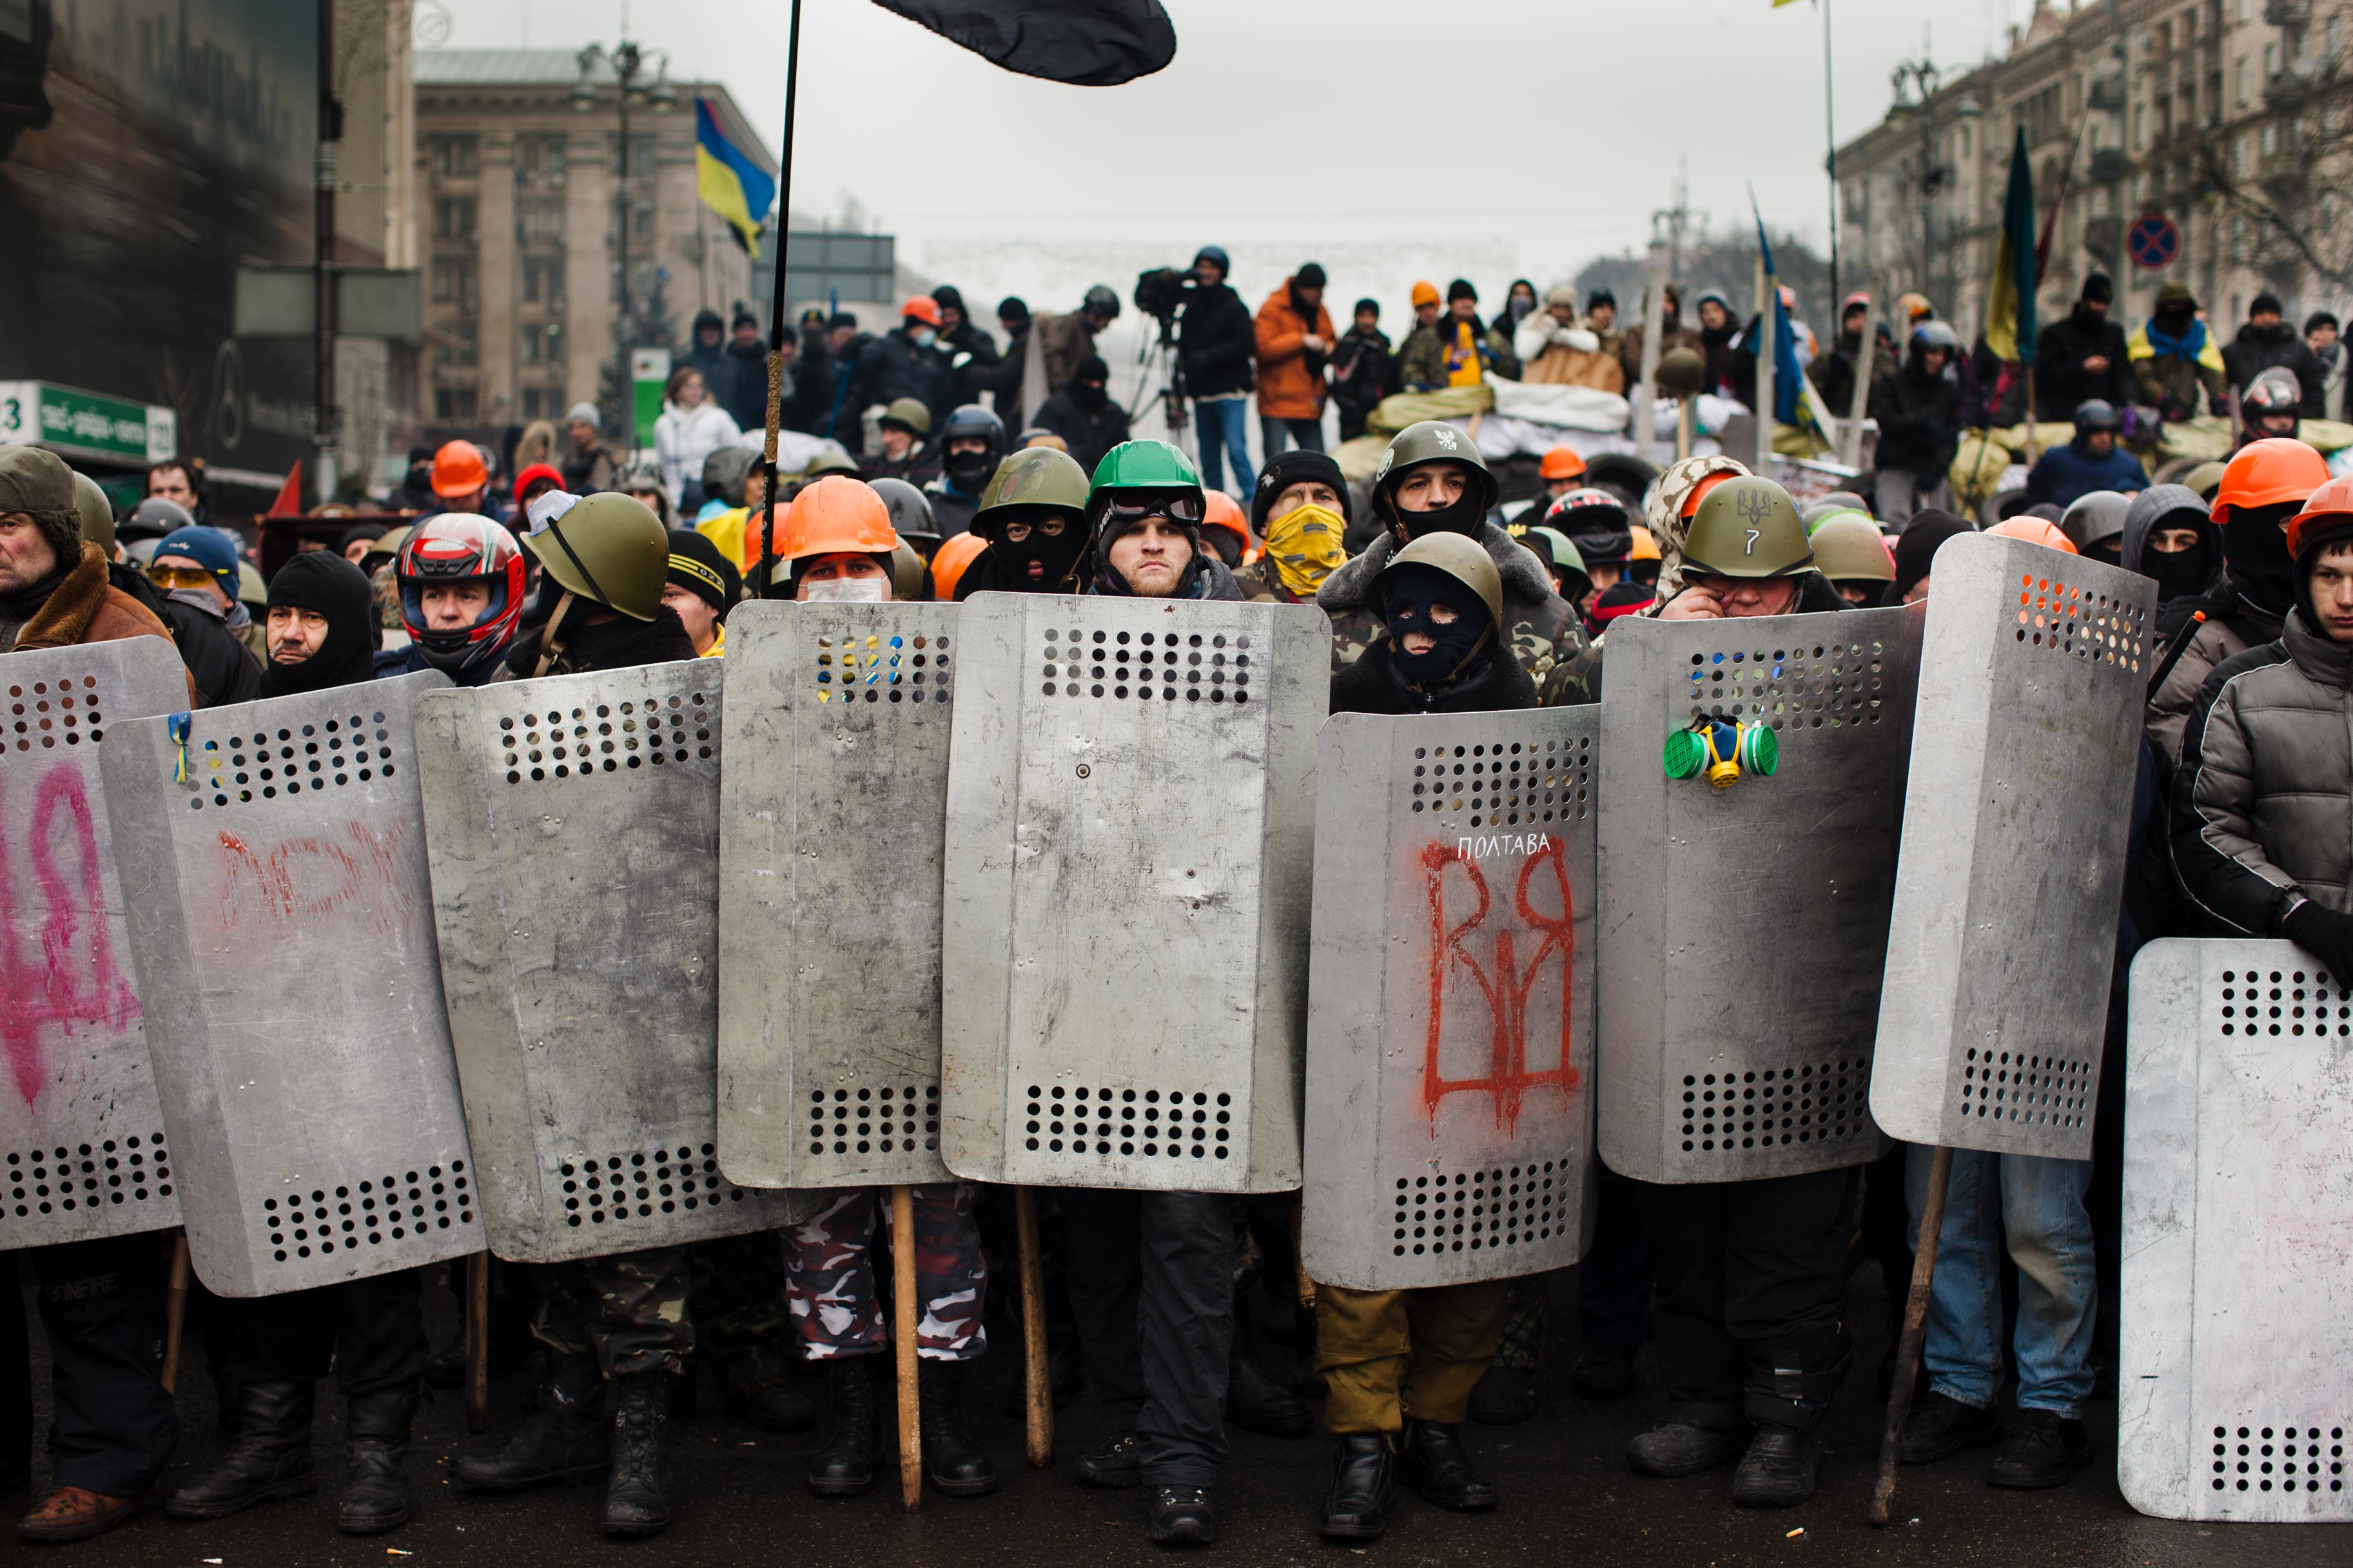 Civil unrest erupts during Ukraine's Maidan protests, February 2014.